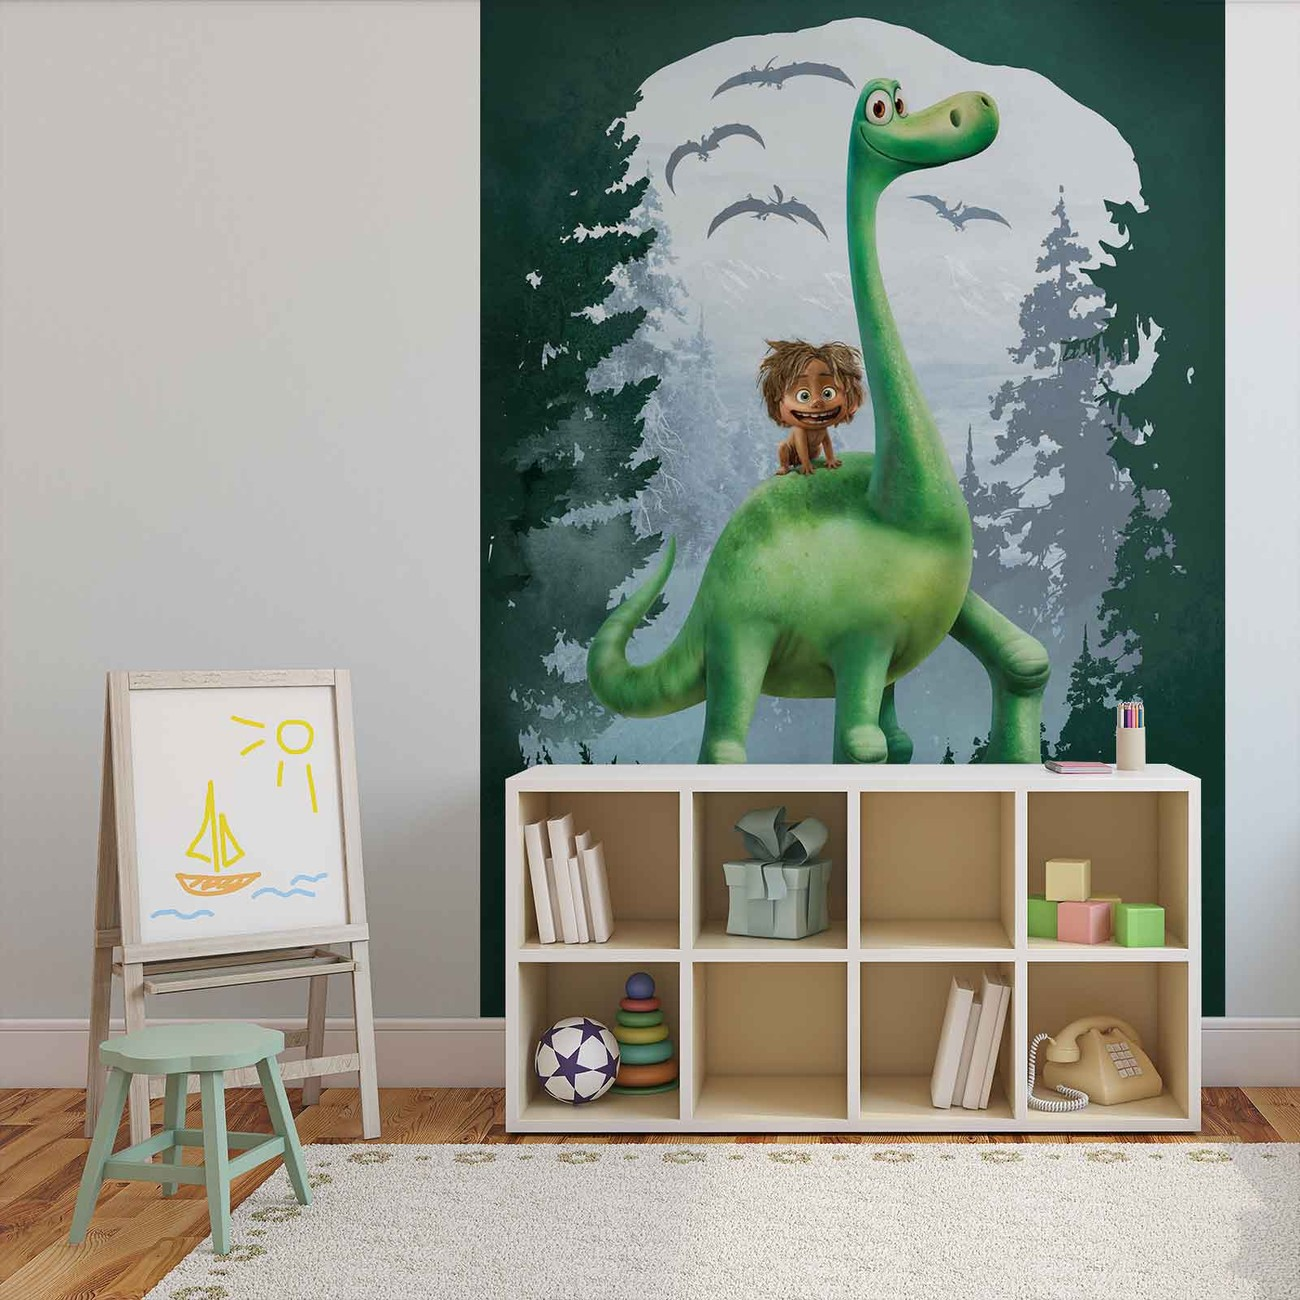 Disney the good dinosaur wall paper mural buy at europosters for Dinosaur wall mural uk